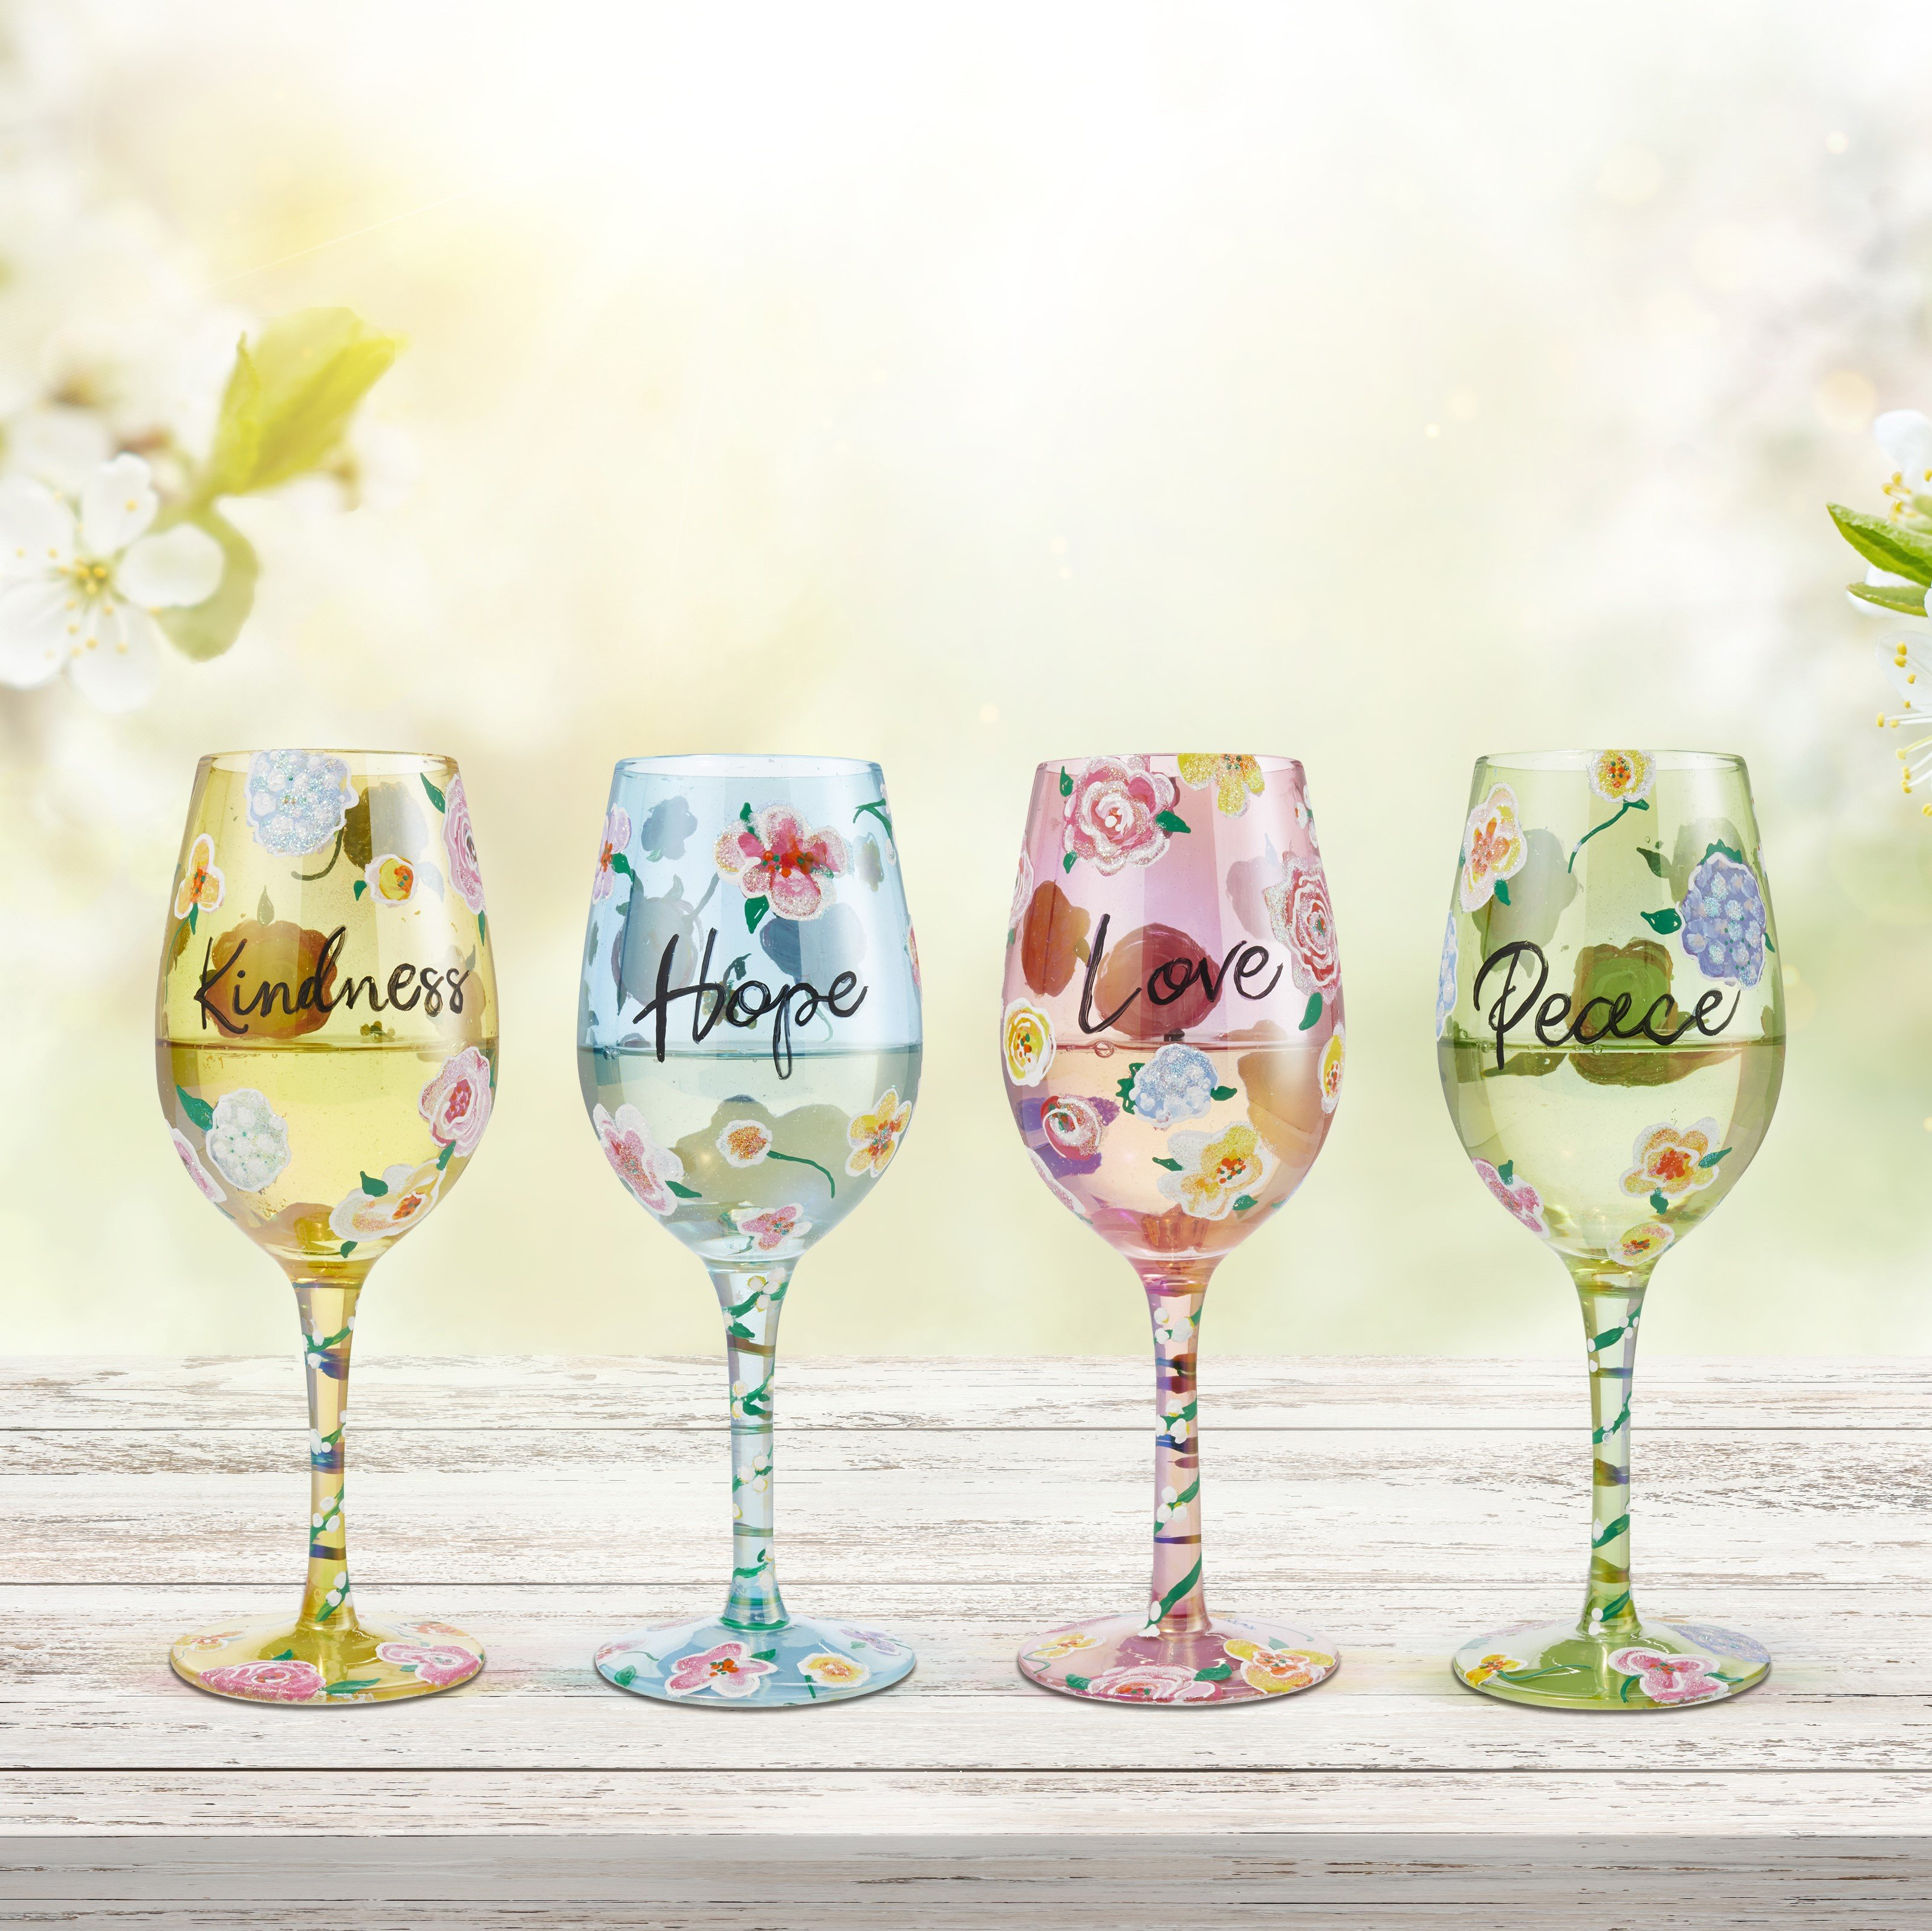 #SawThisAndThoughtOfYou - Enesco launches new range of Lolita glasses to share sentimental messages of better times ahead.